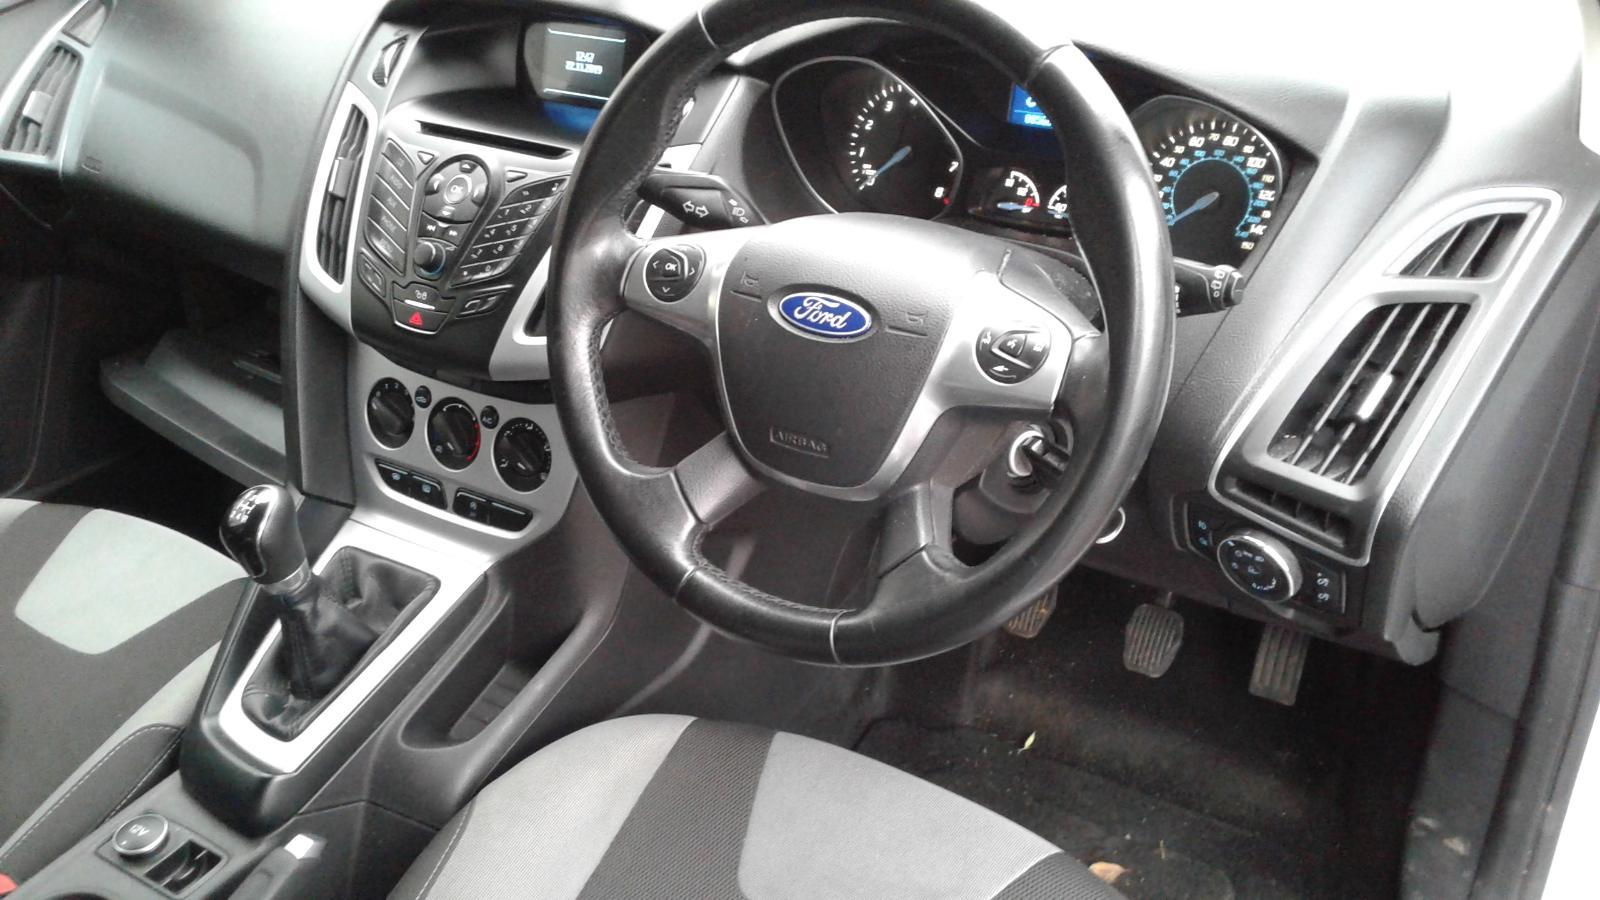 2013 FORD FOCUS Image